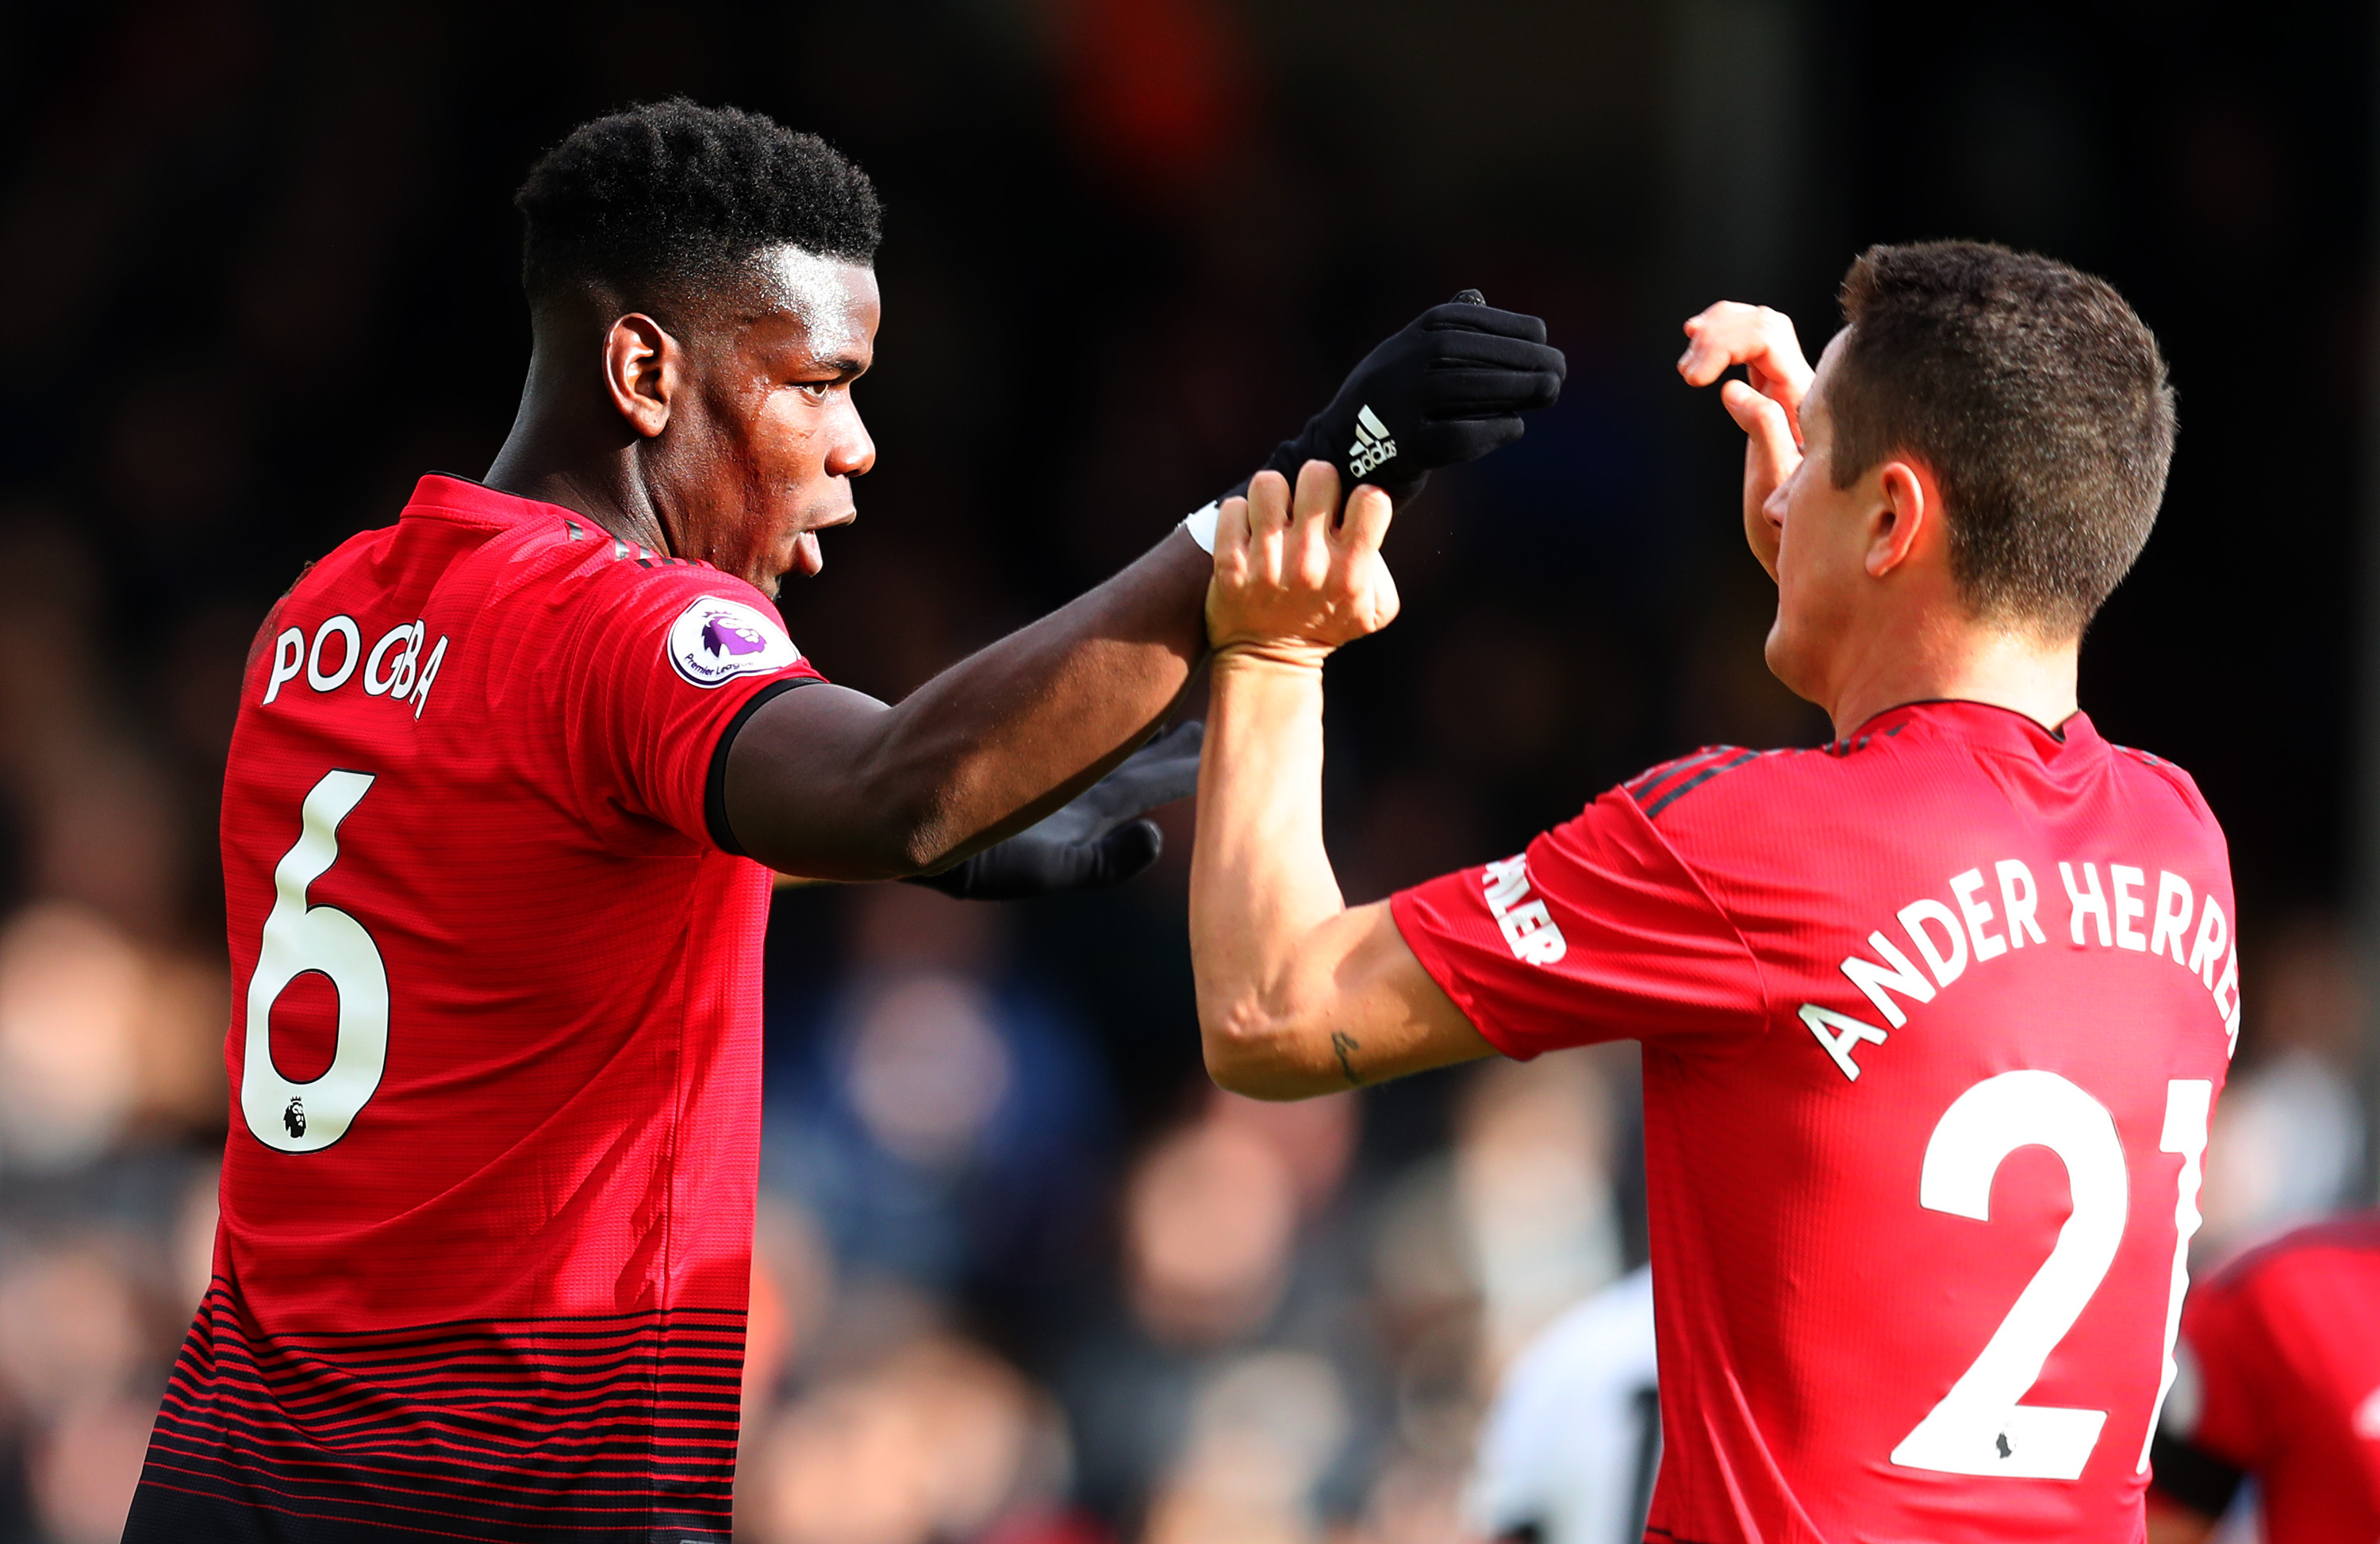 Pogba could reunite with Ander Herrera at PSG (Photo by Catherine Ivill/Getty Images)